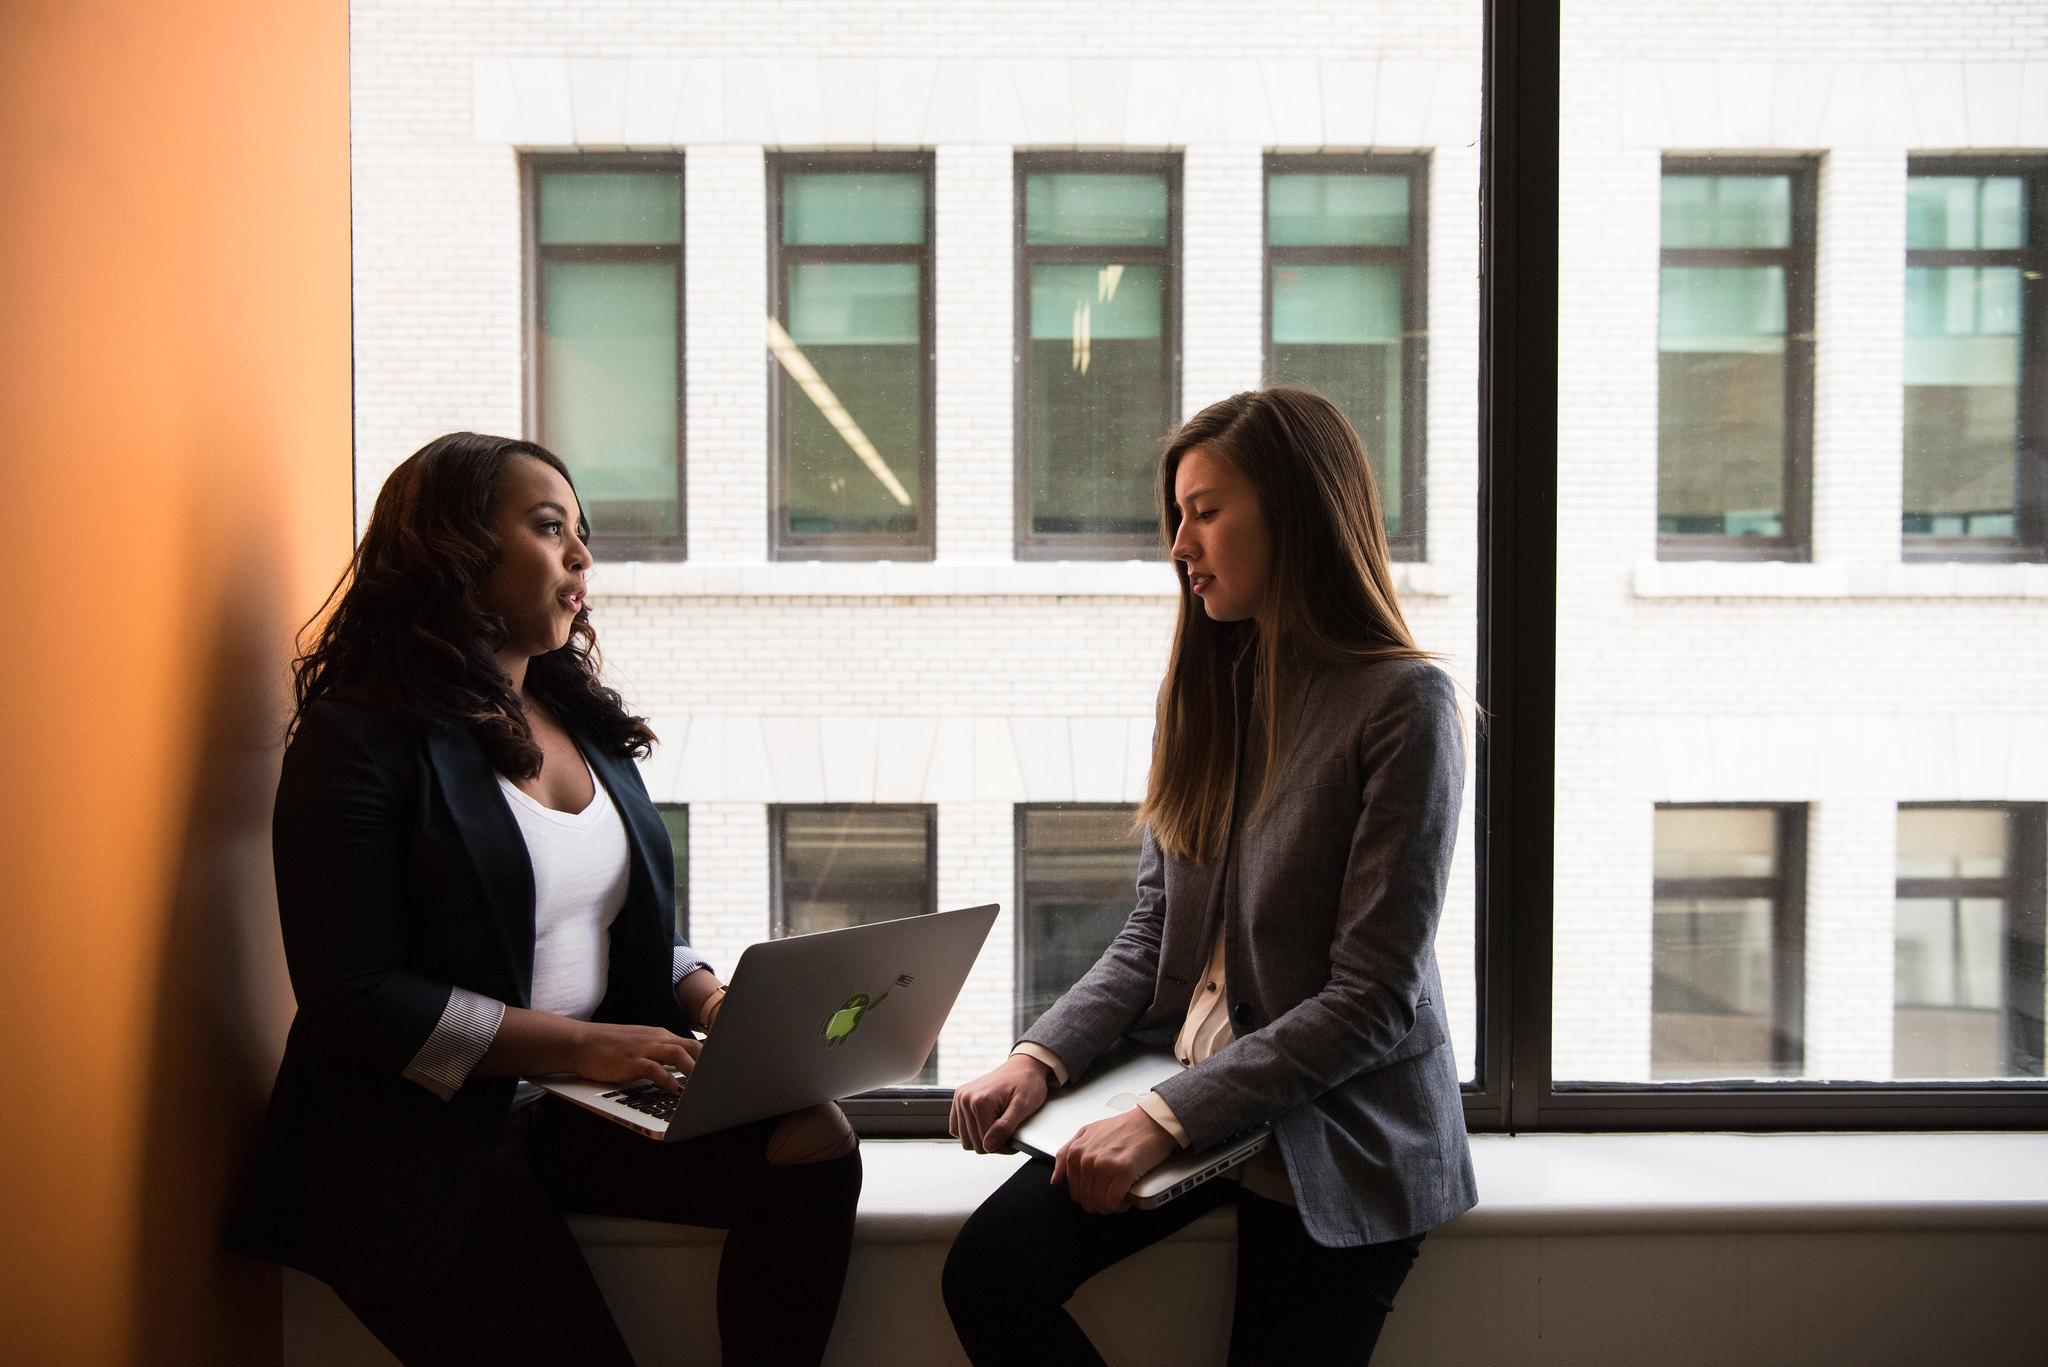 Photograph of two women sitting on a window bench. One is holding an open computer and talking to the other.